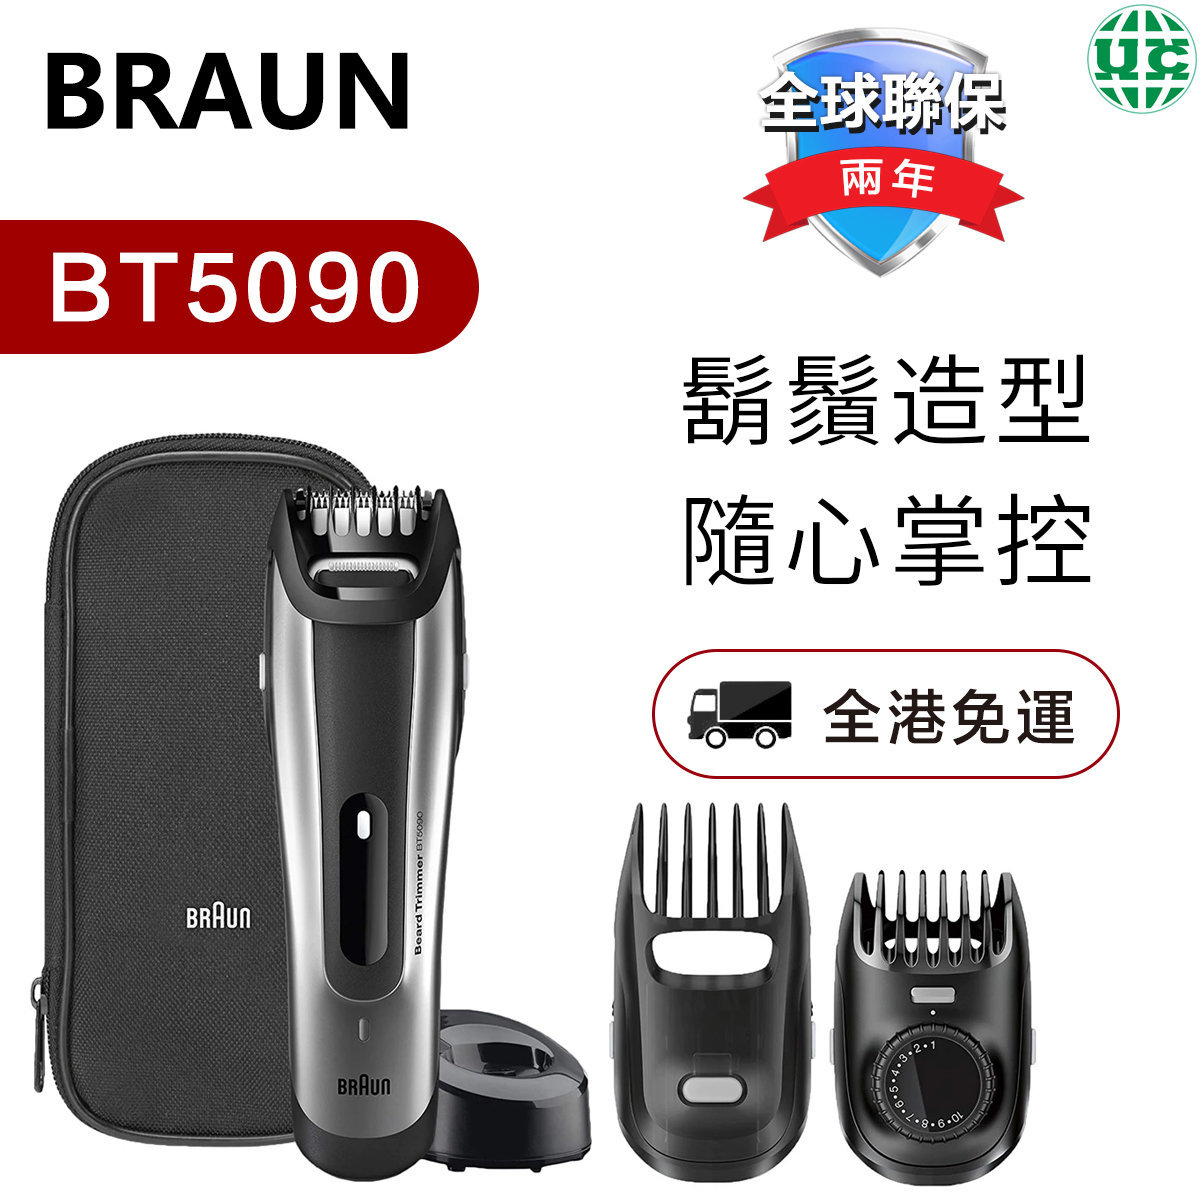 Beard Trimmer BT5090 Precision Beard Trimmer (parallel import)